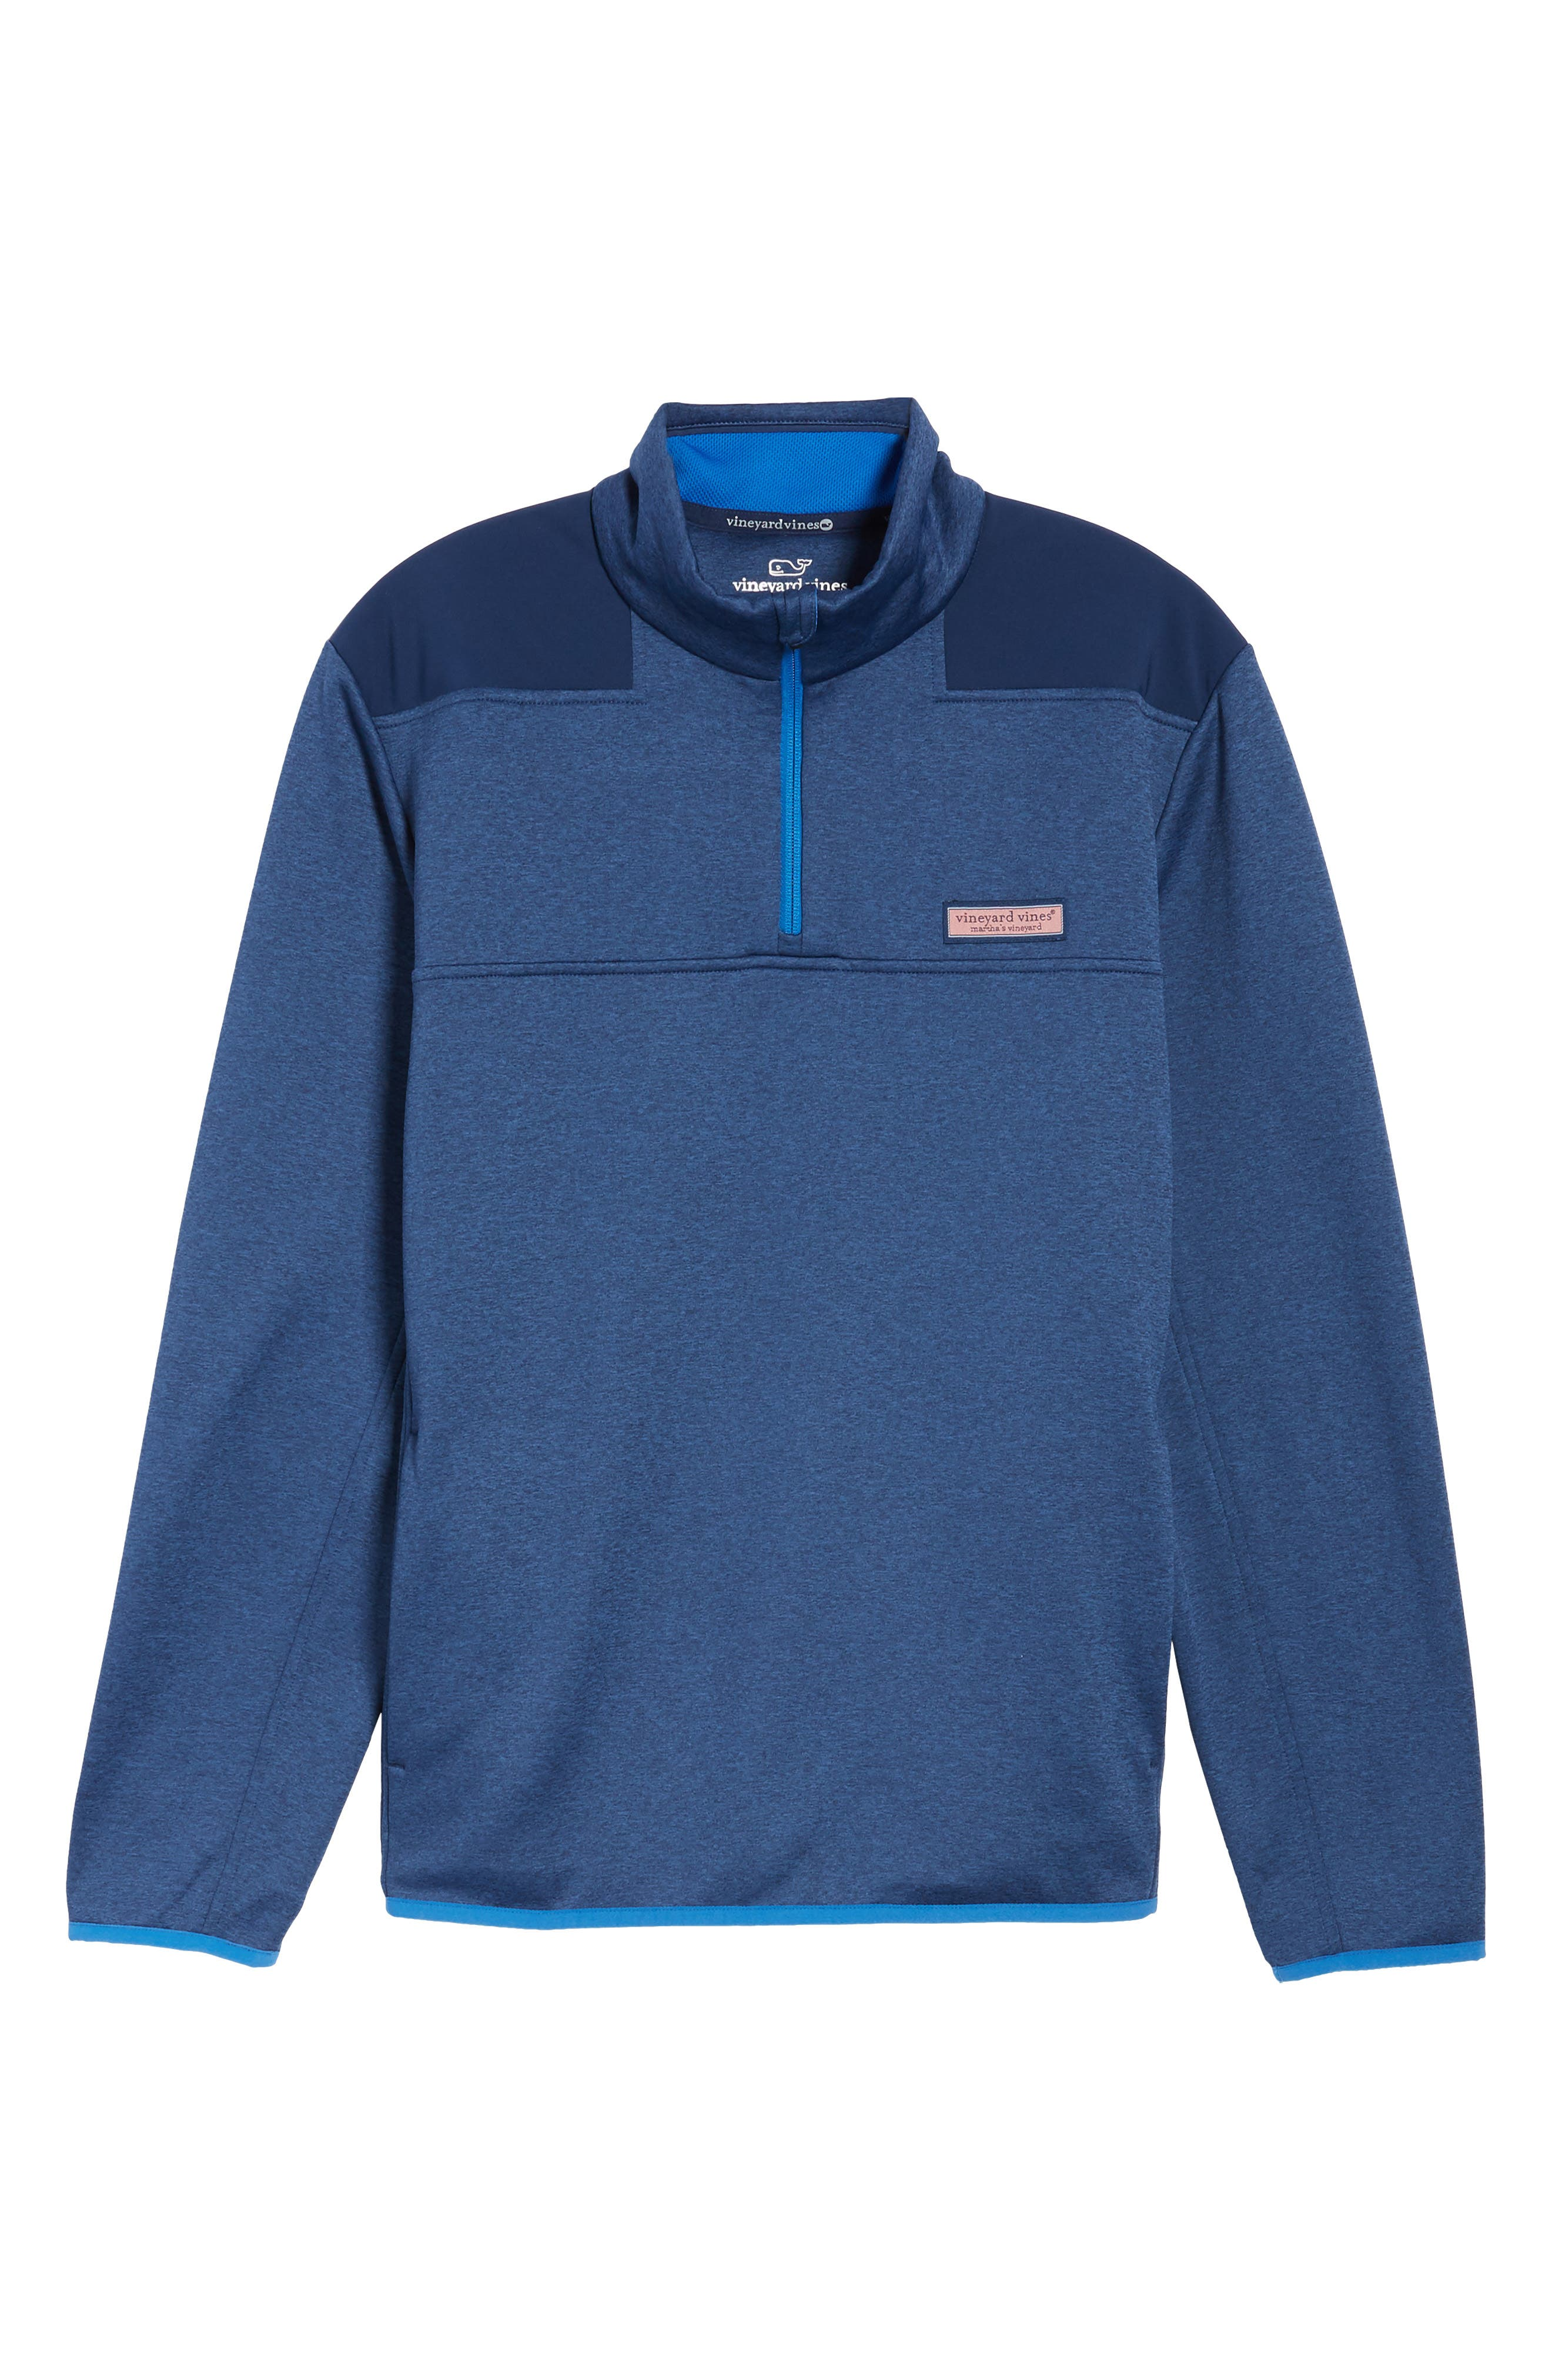 Shep Performance Fleece Quarter Zip Pullover,                             Alternate thumbnail 6, color,                             Deep Bay